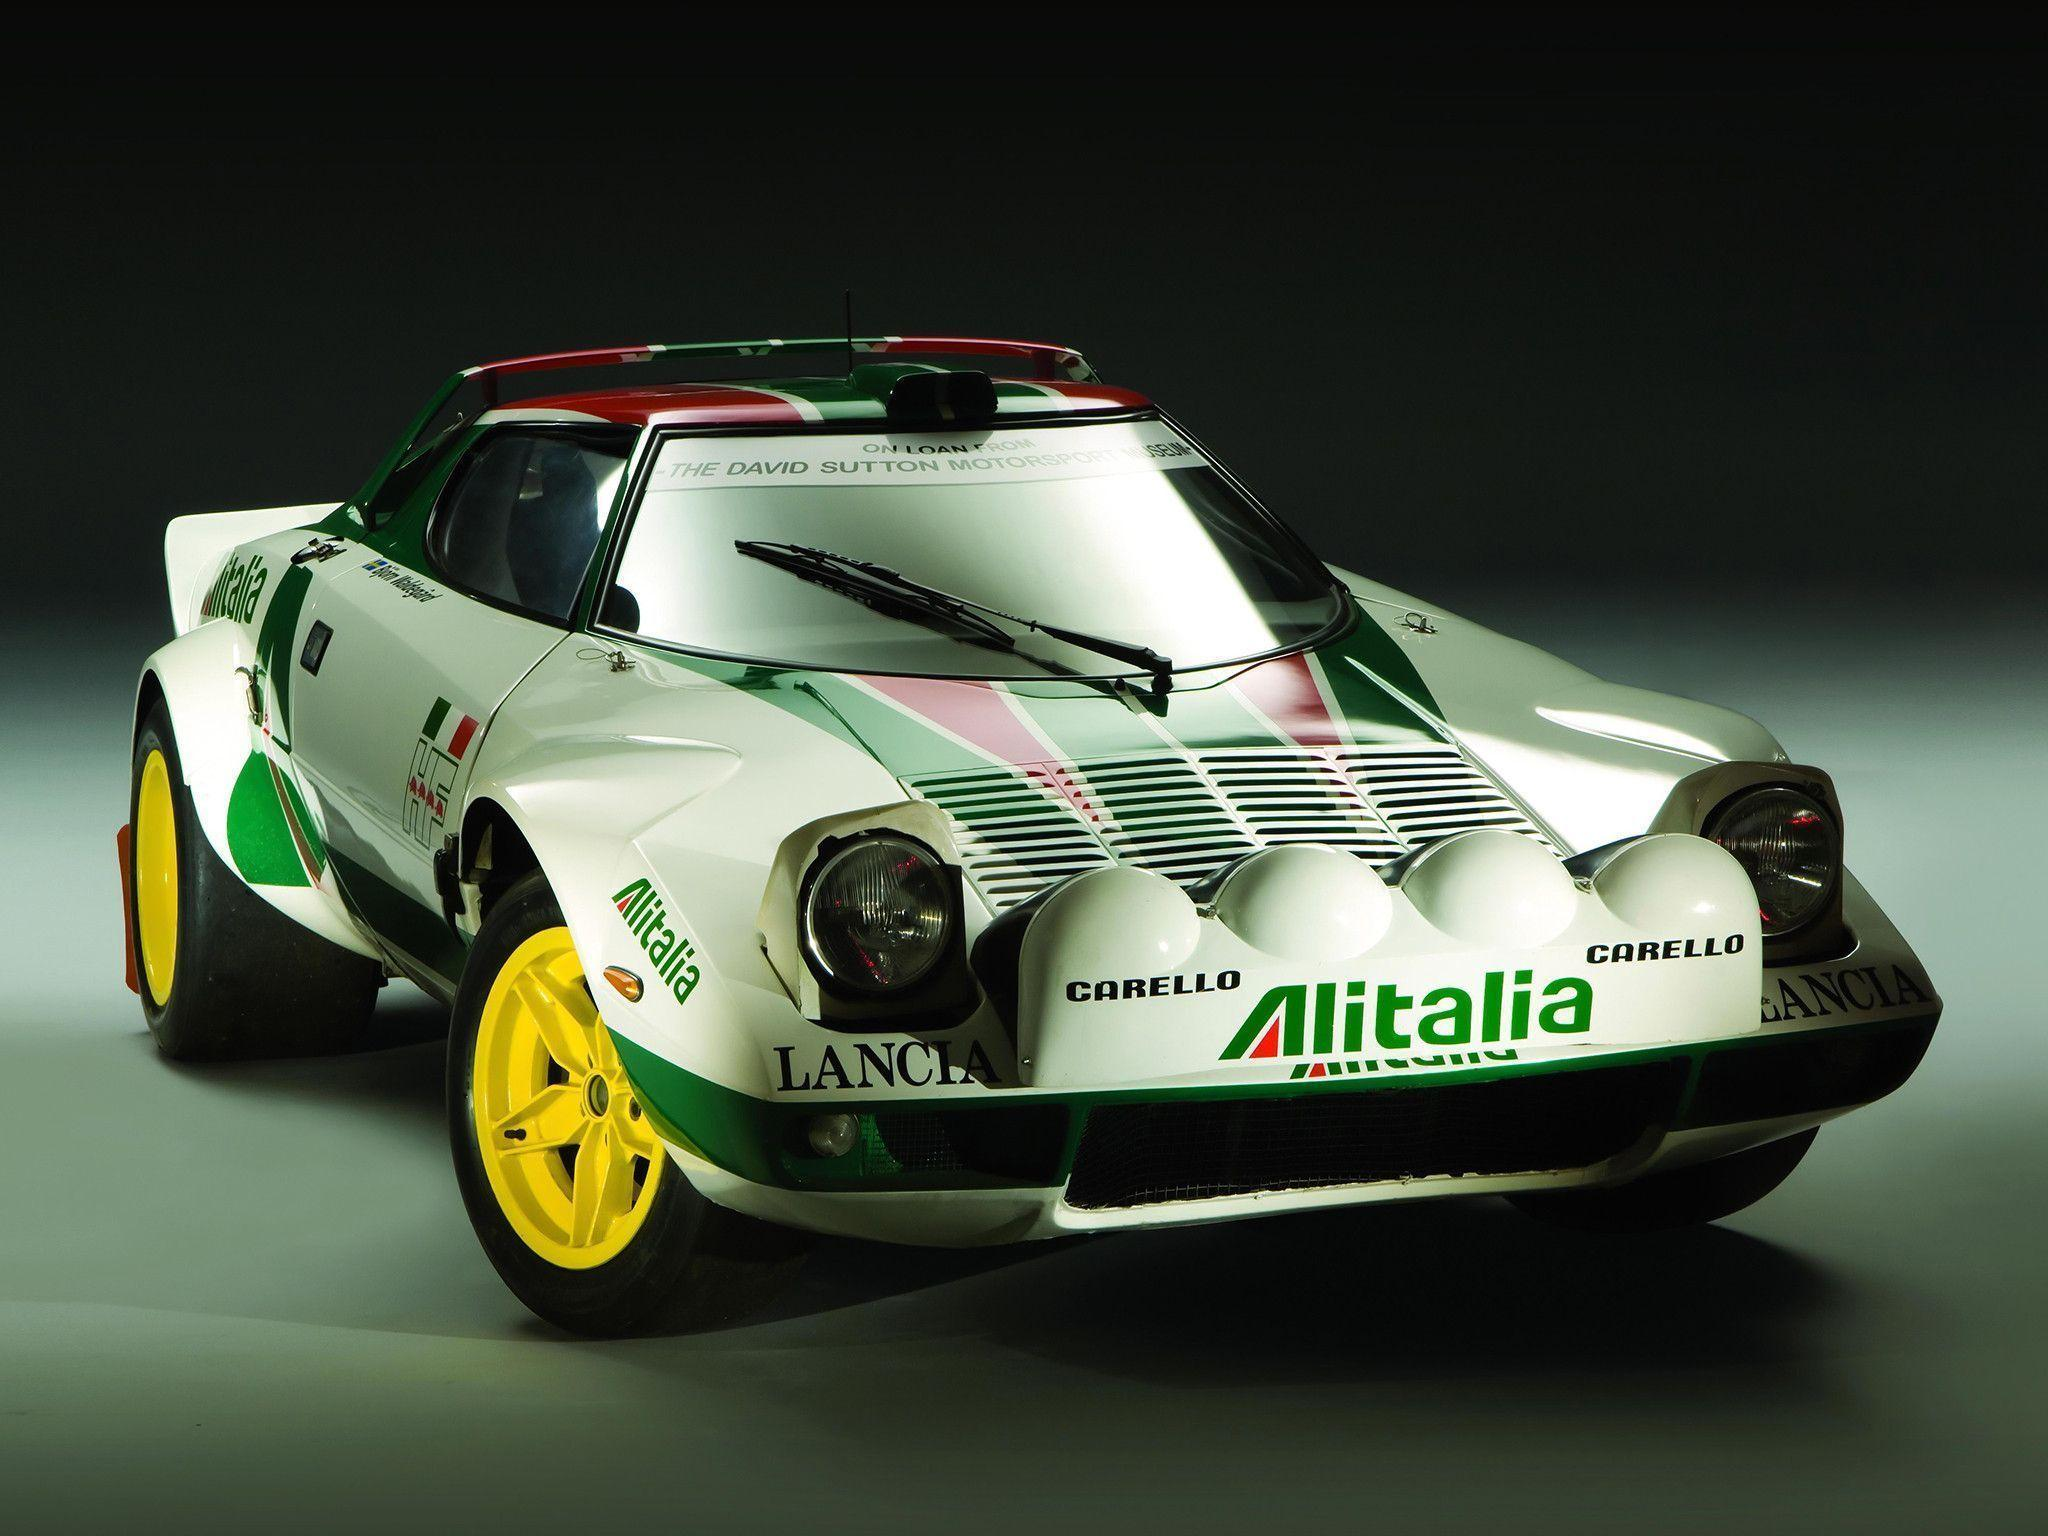 lancia stratos wallpapers wallpaper cave. Black Bedroom Furniture Sets. Home Design Ideas